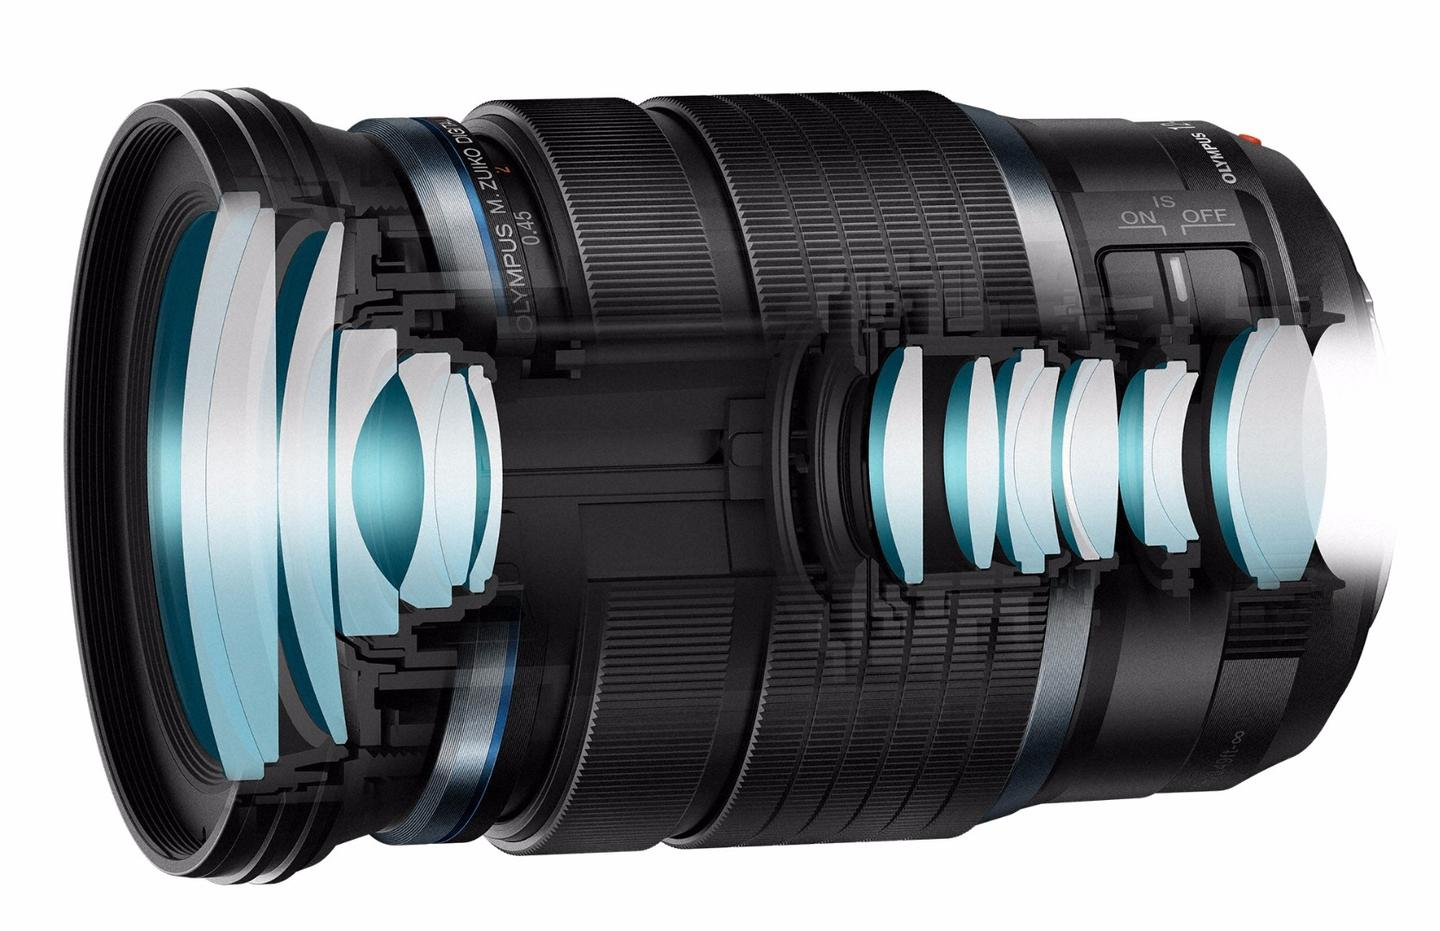 The advanced design of the 12-100 mm lens is like having two separate zoom lenses in one